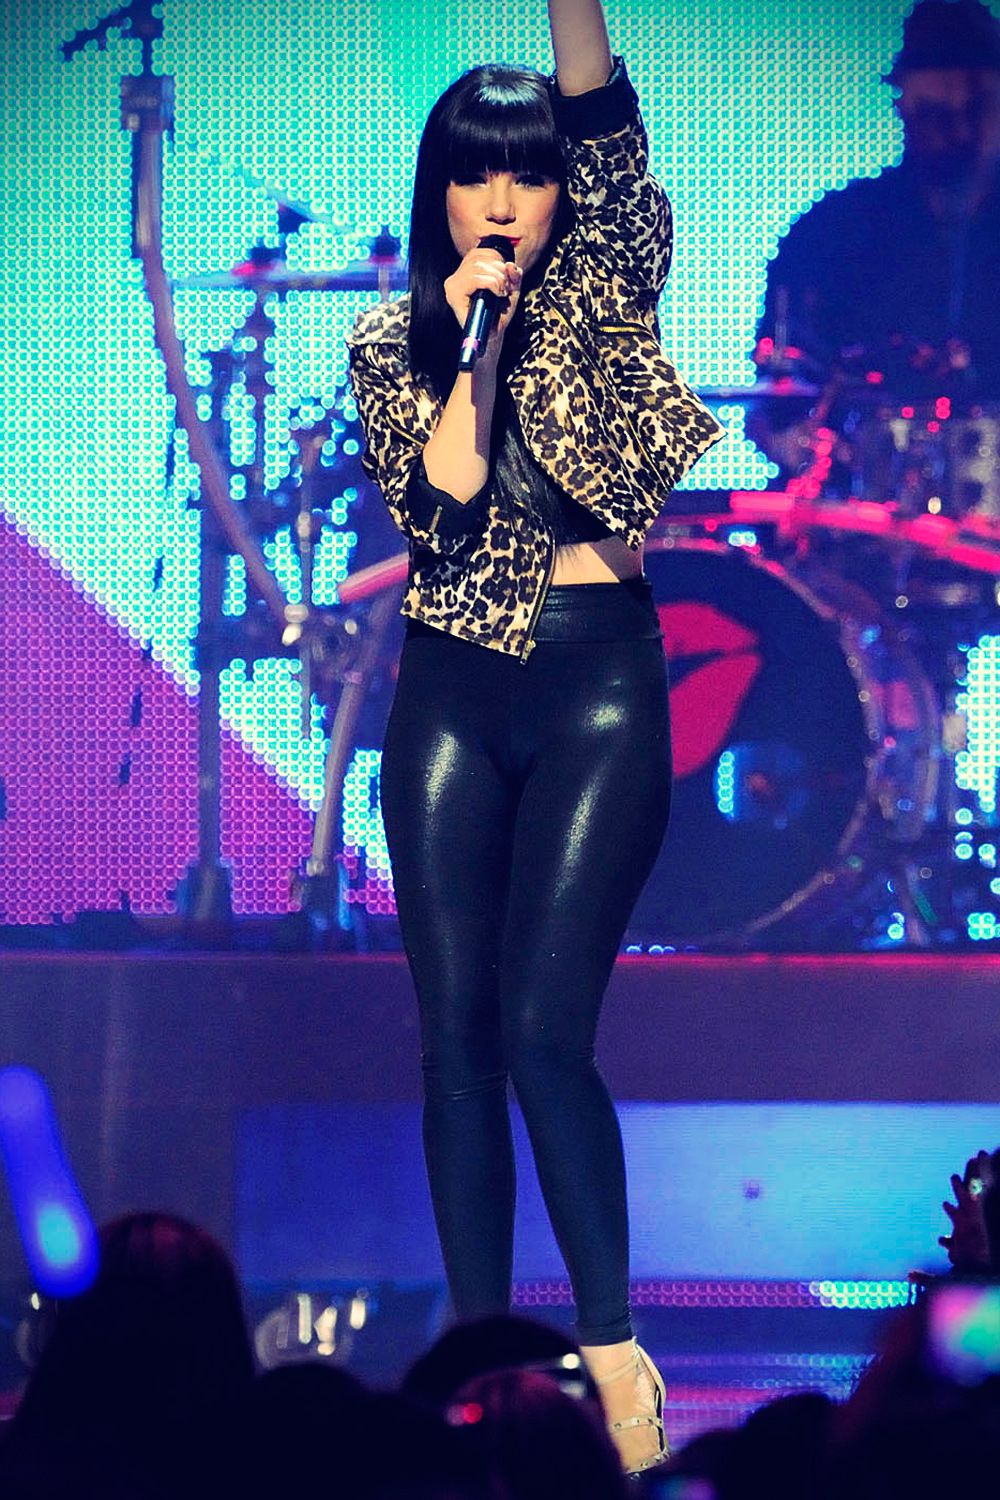 Carly Rae Jepsen performs on stage during The Big Jingle 2012